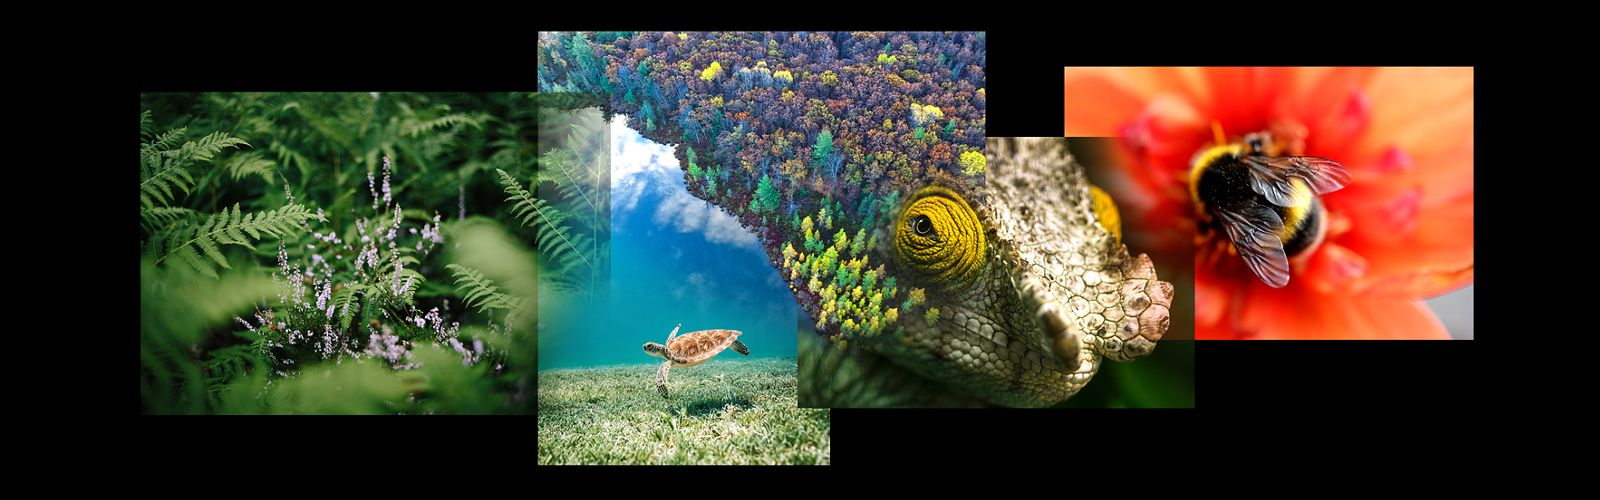 a collage of photos showing forest scenes, a sea turtle, a bumblebee, and a chameleon's eye, against a black background